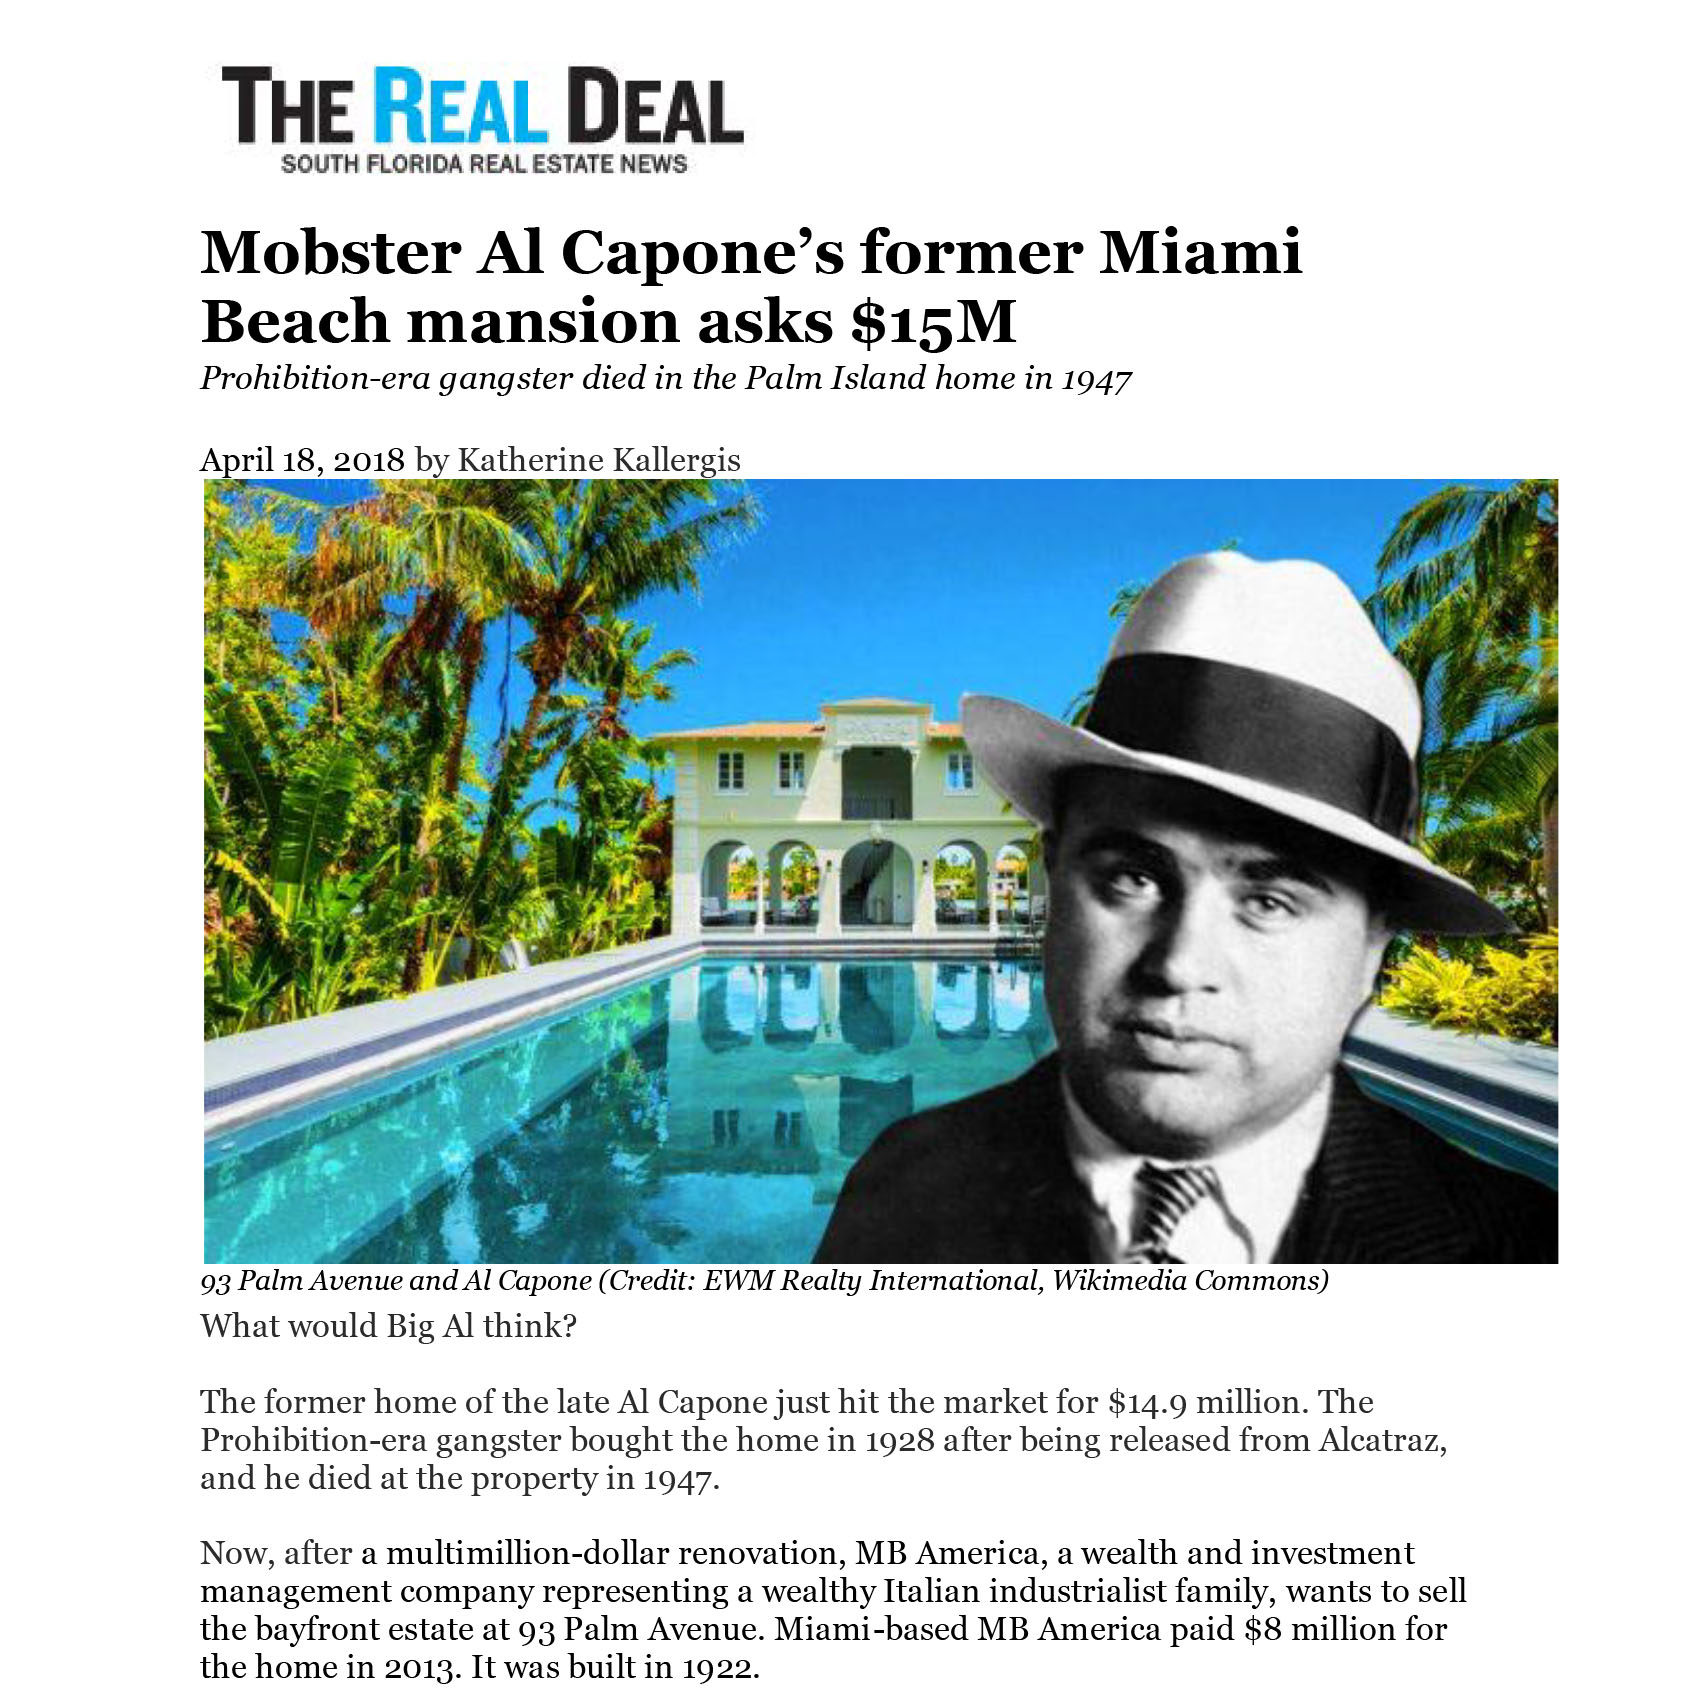 therealdeal.com4.18.18.jpg